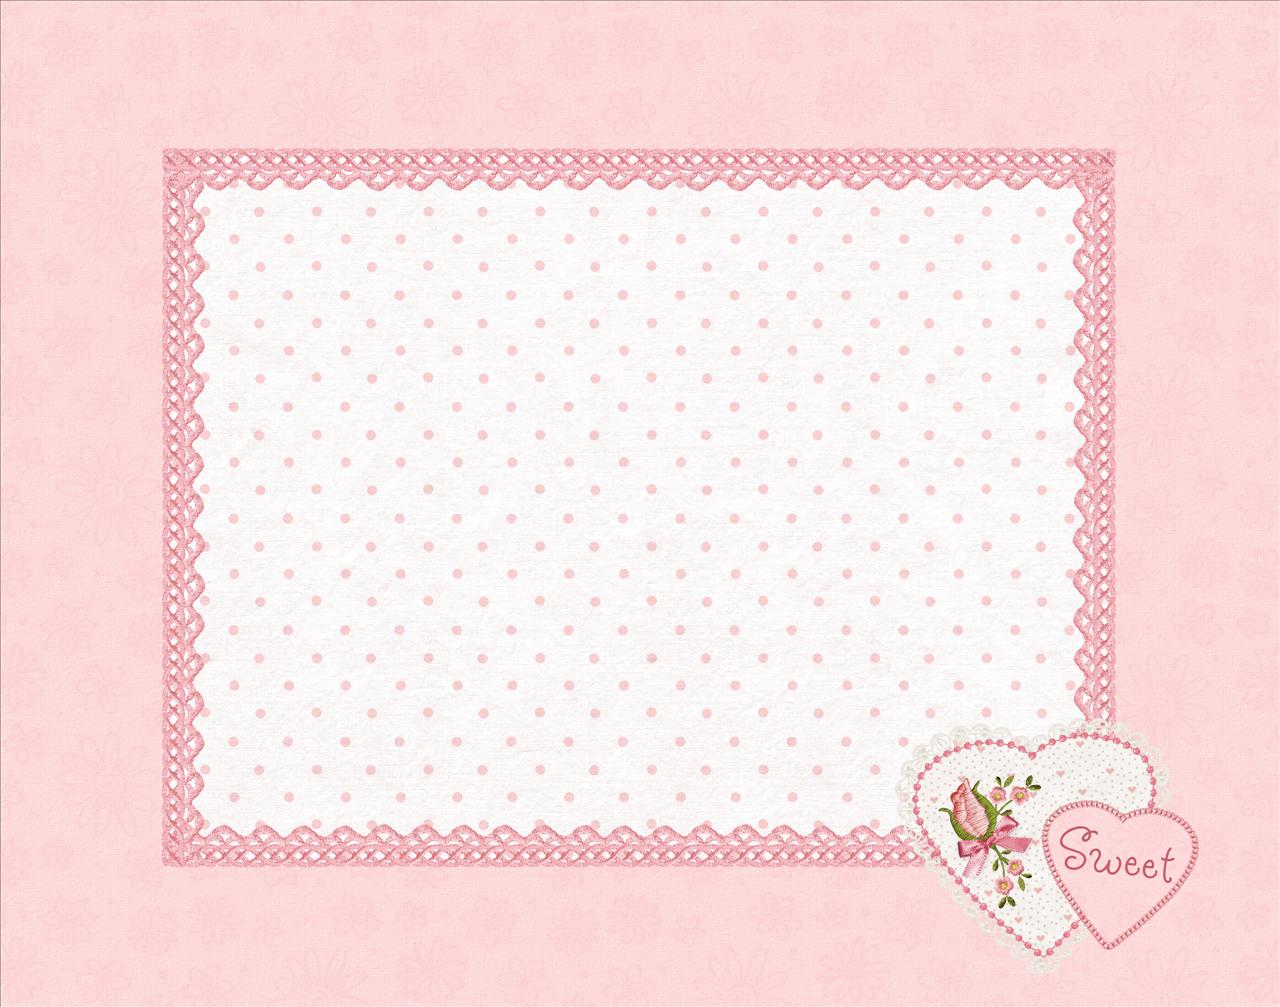 My Sweet Cover Frame for Love Backgrounds